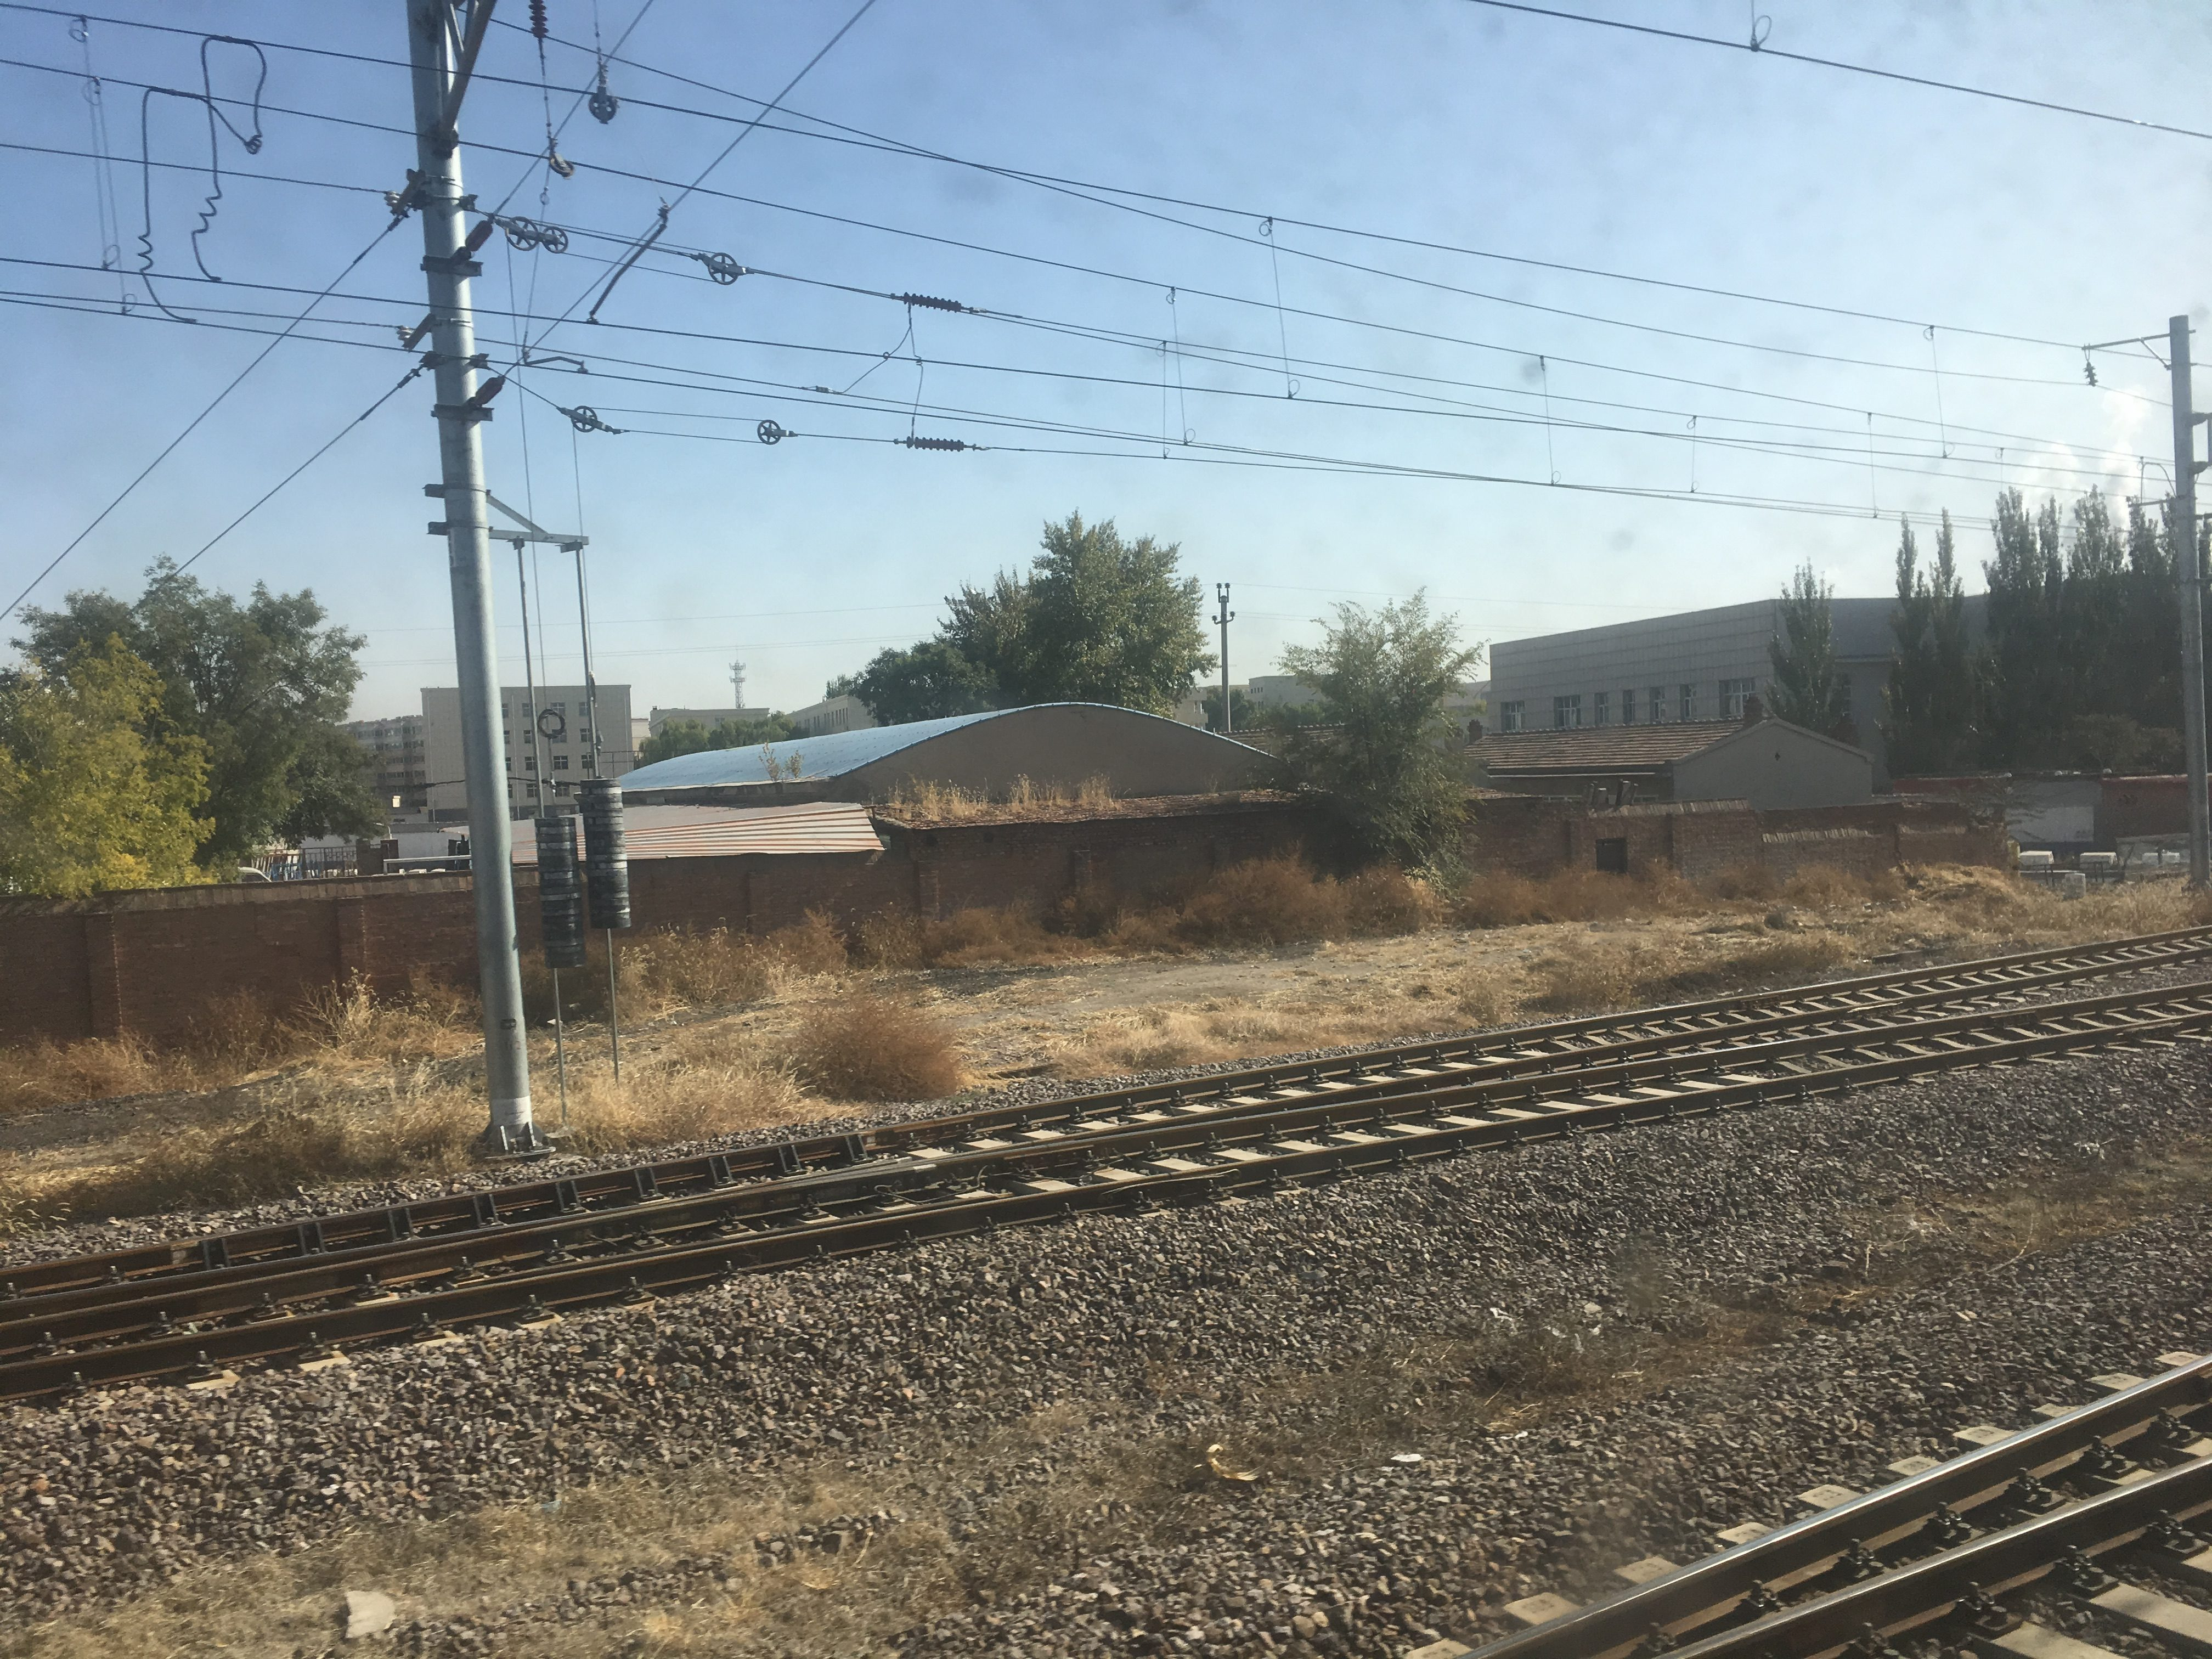 Chinese double tracks as we get closer to Beijing